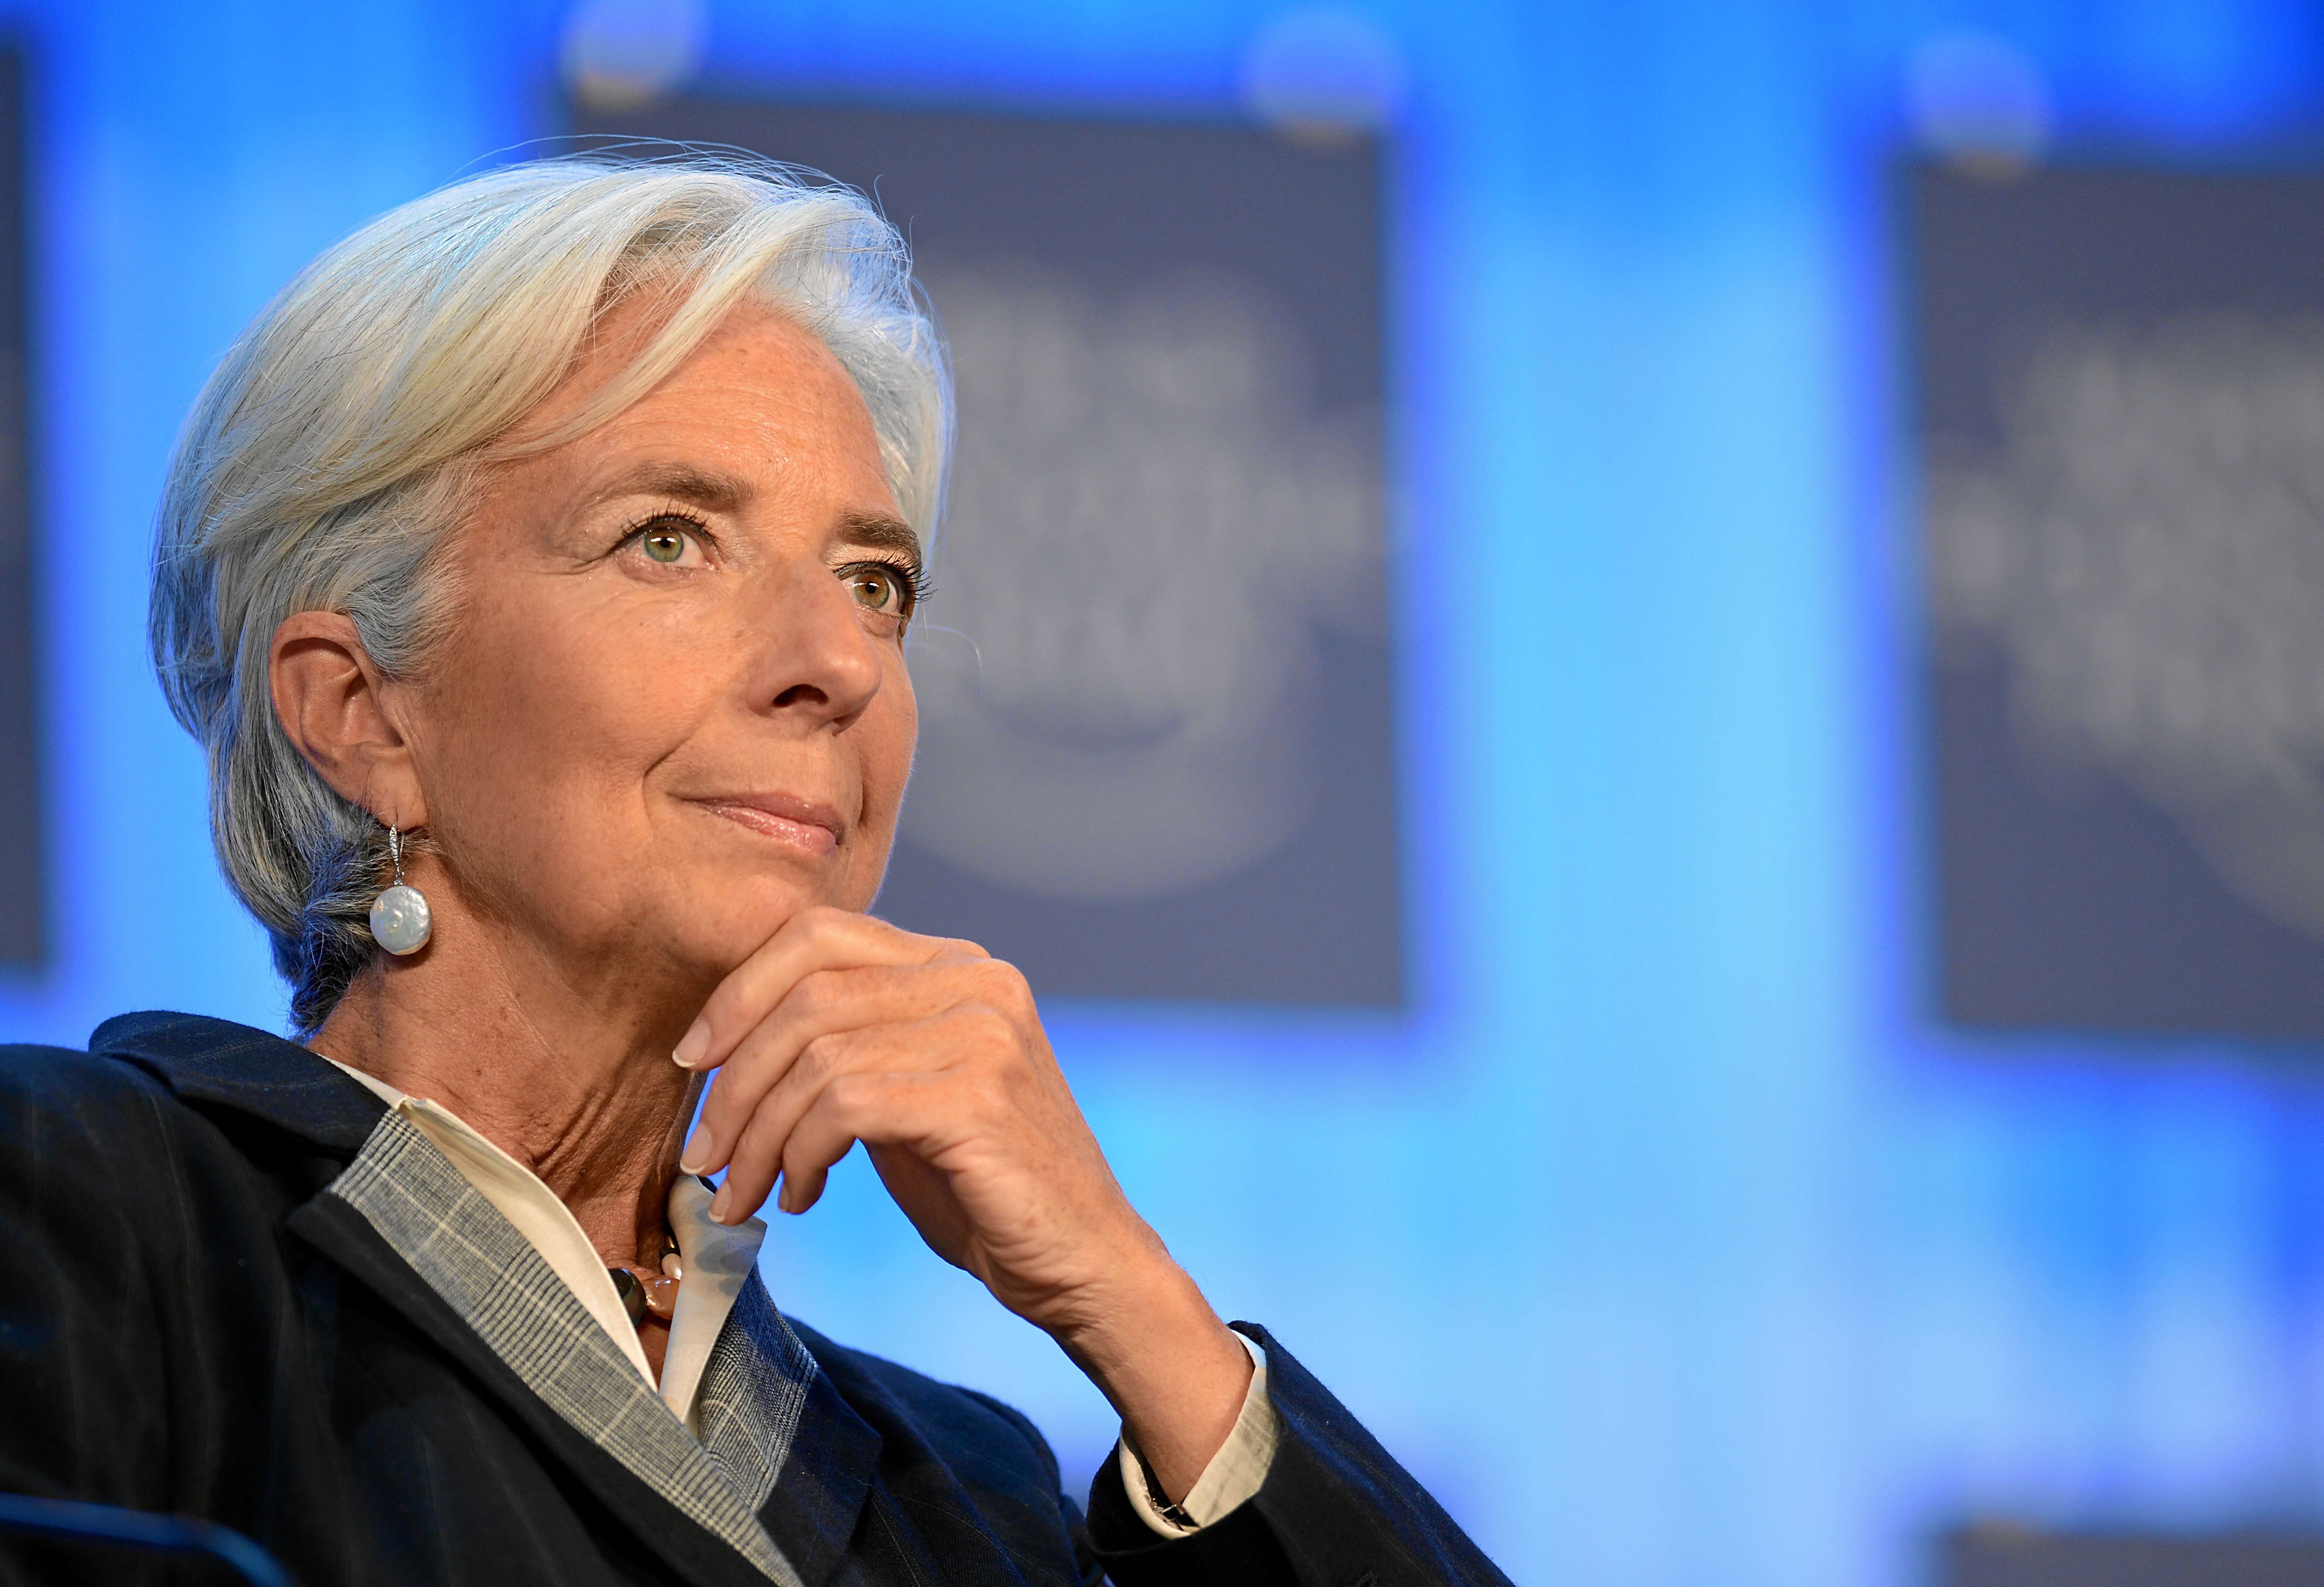 Christine Lagarde: There Needs to Be Global Regulation of BTC